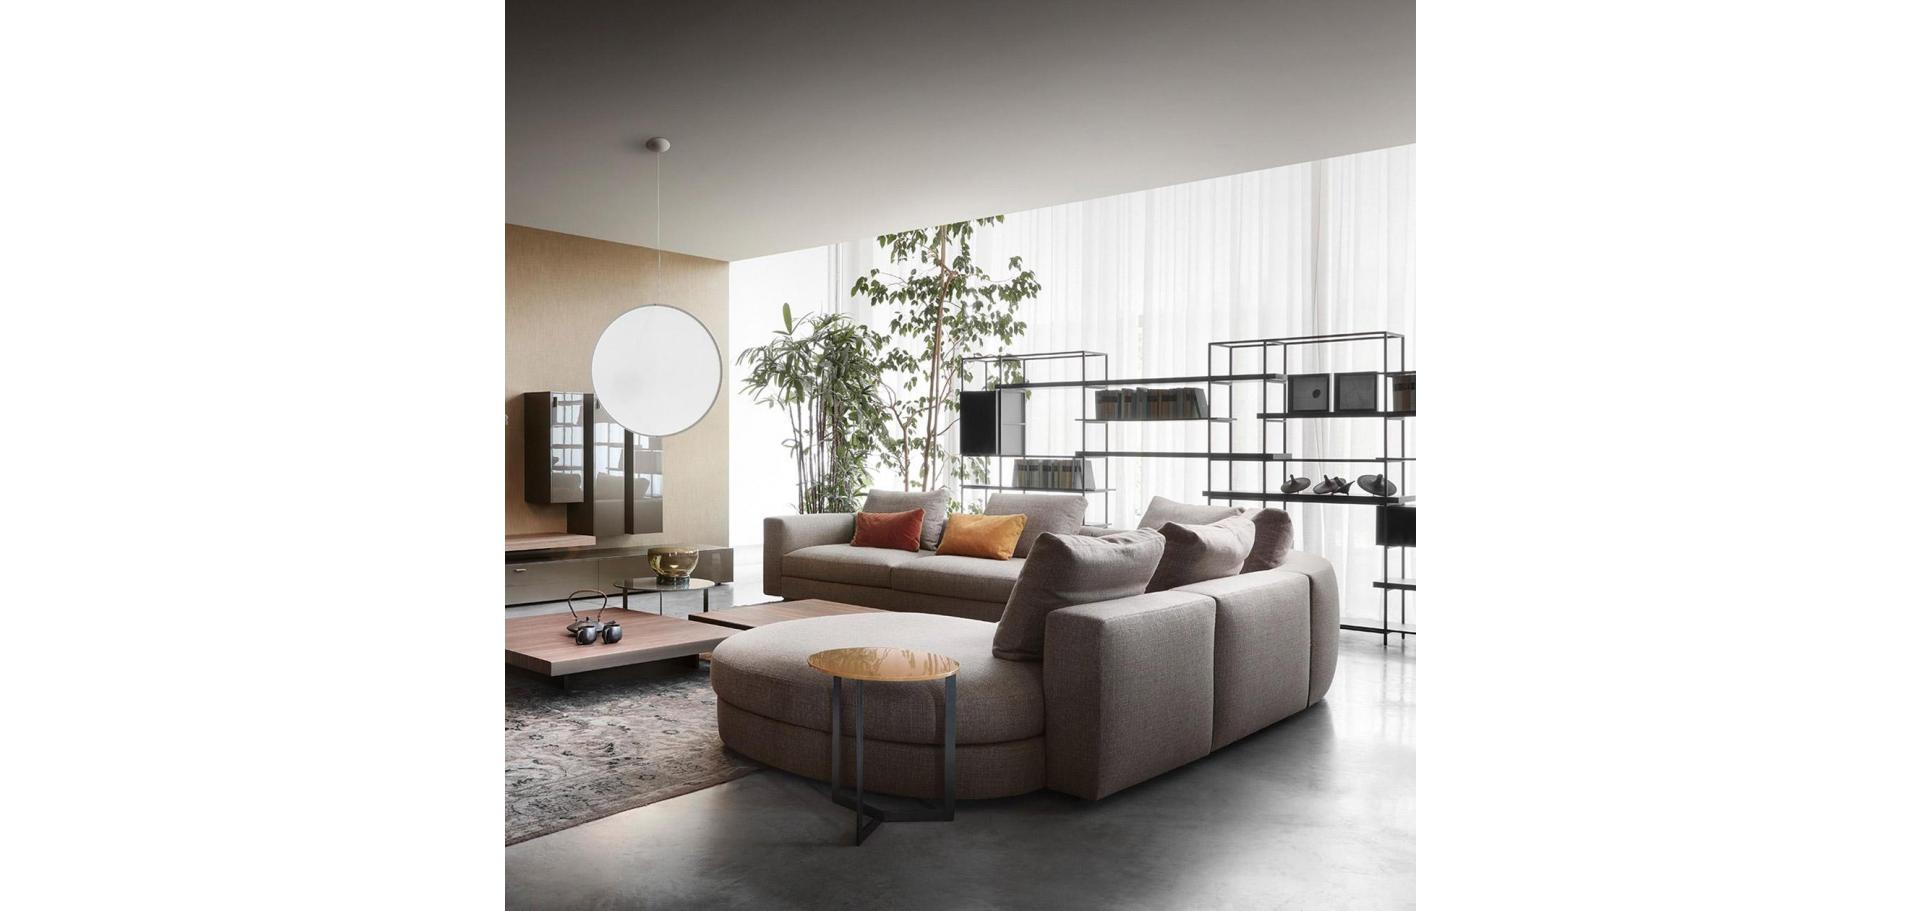 Lema's new designs unveiled in London